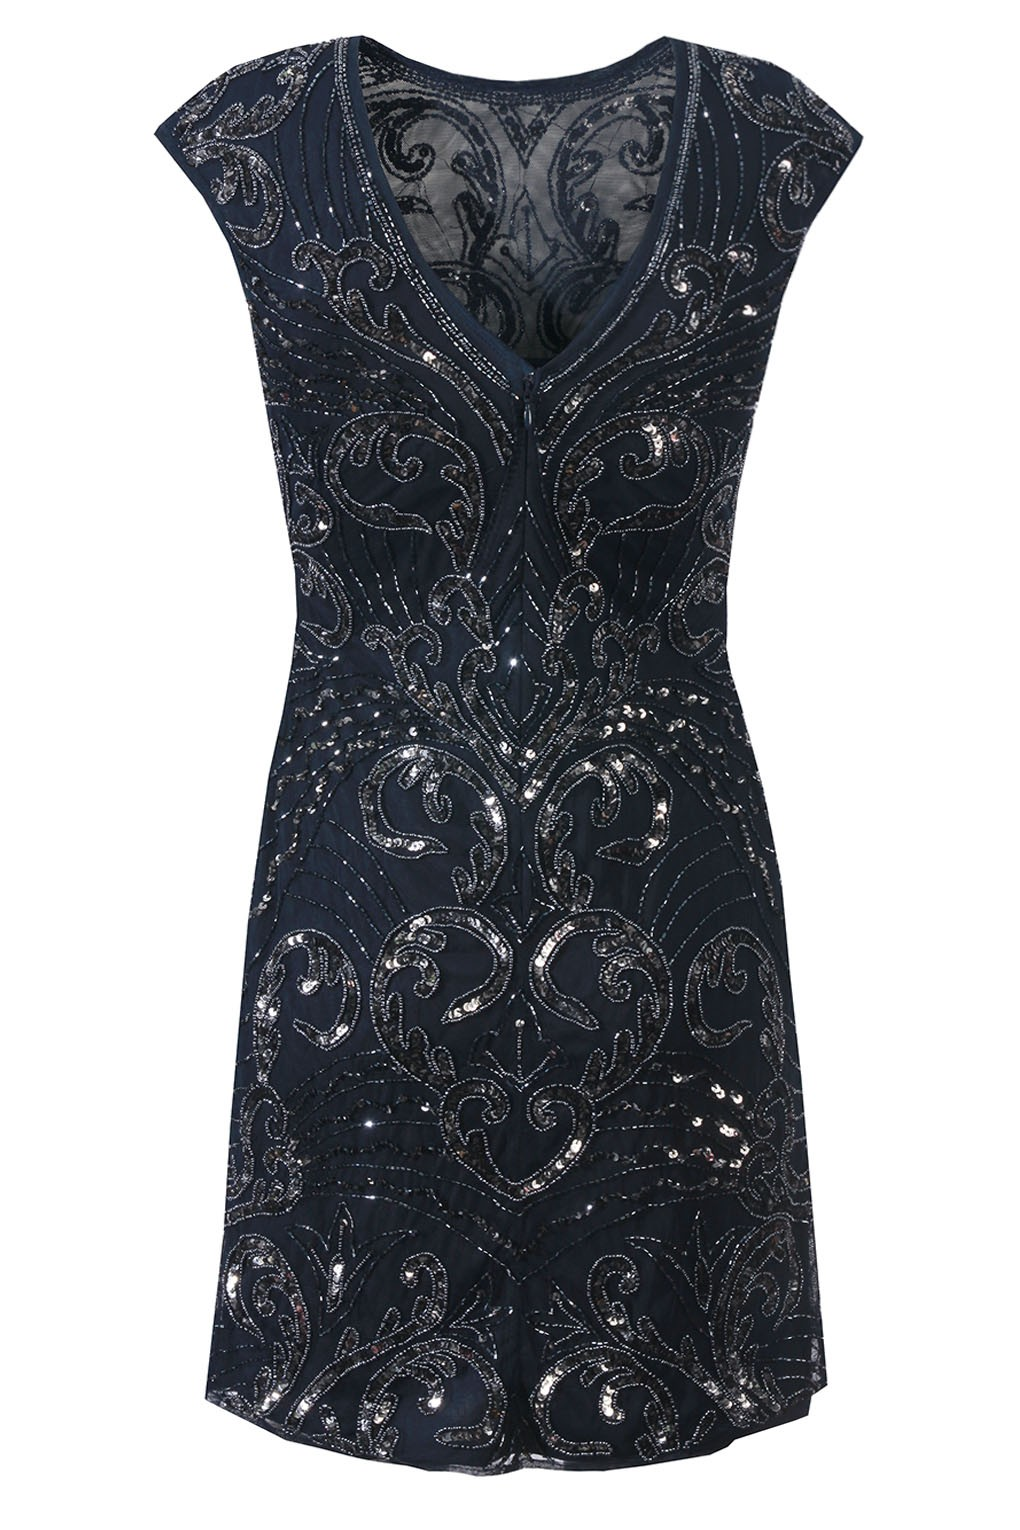 Lace Amp Beads Austin Navy Embellished Dress Party Dresses